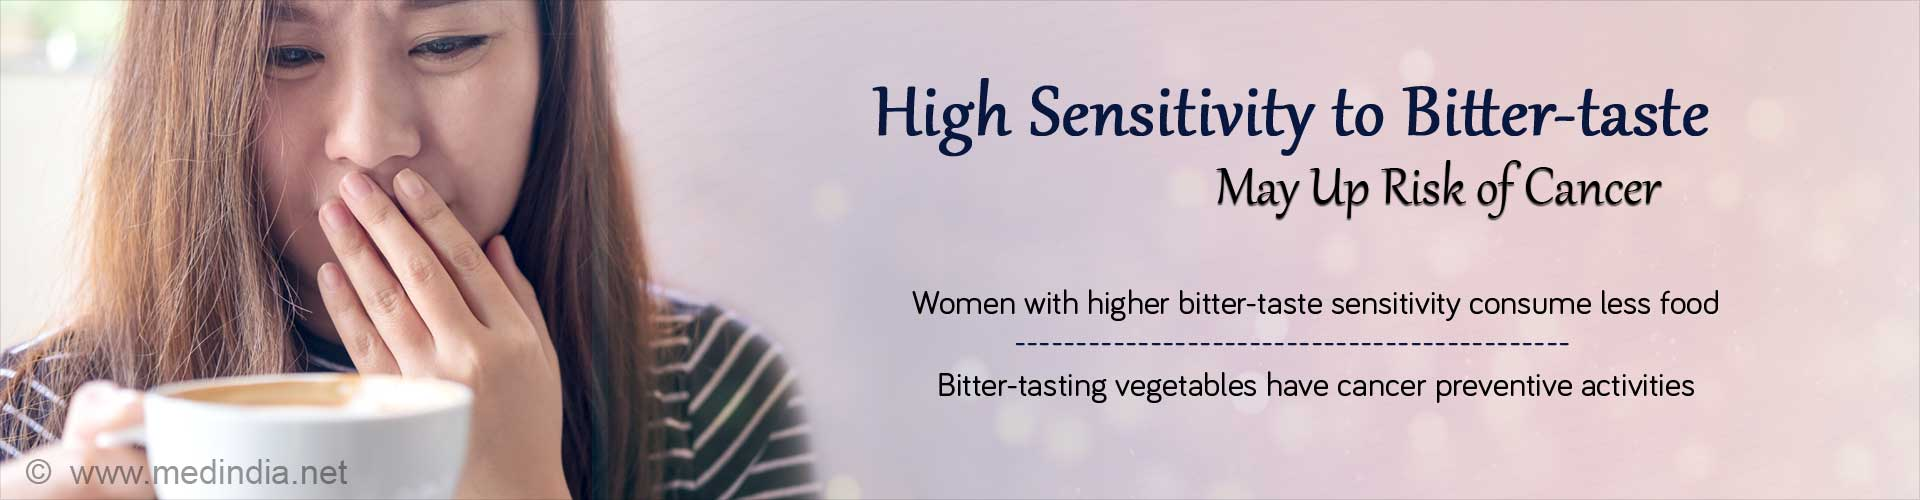 Sensitivity to Bitter-Taste may be Associated with Cancer Risk